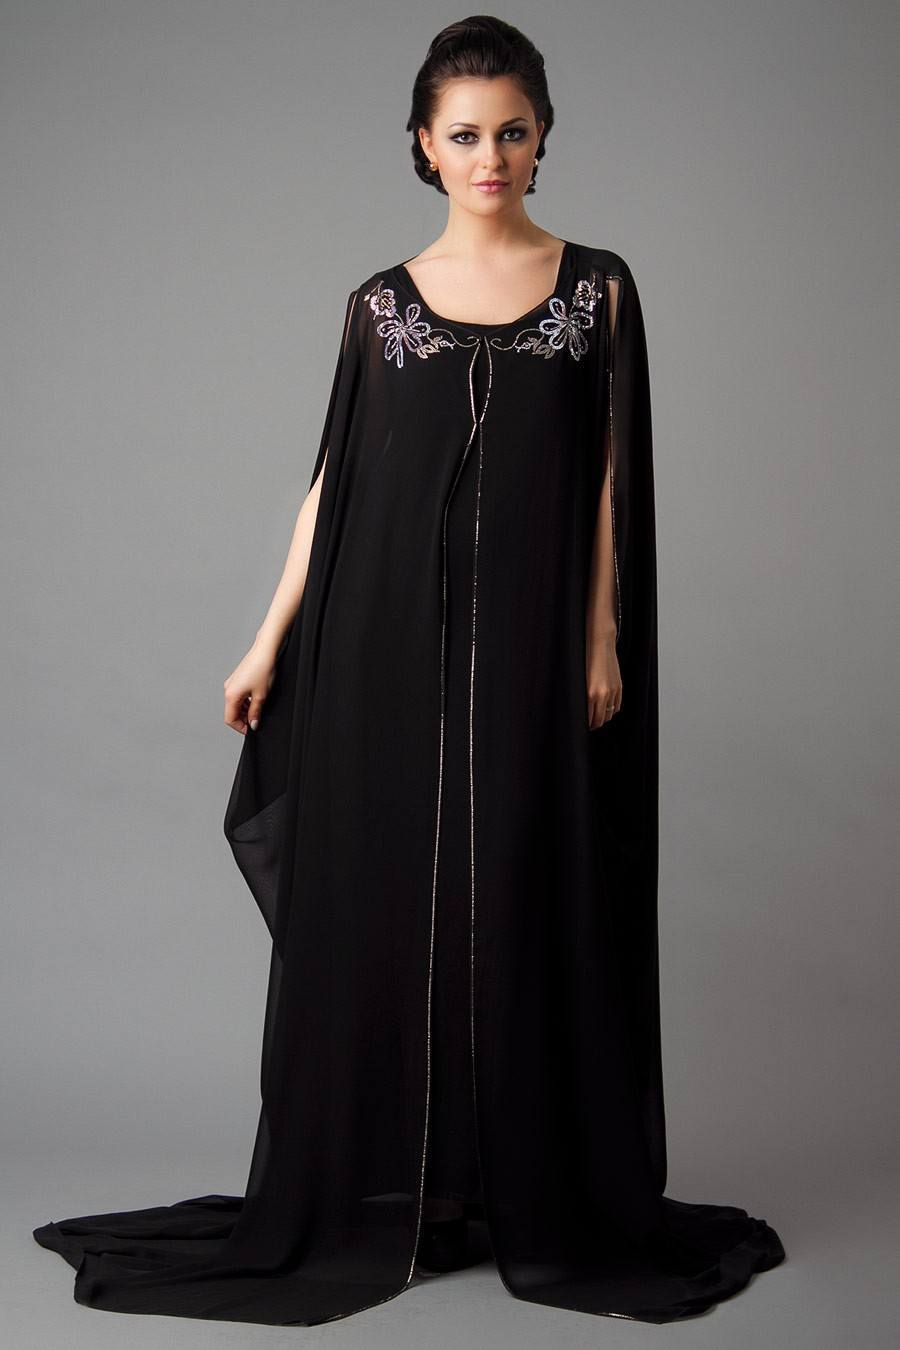 ad6f2abf070f 15 Most Popular Dubai Style embroidered Abayas